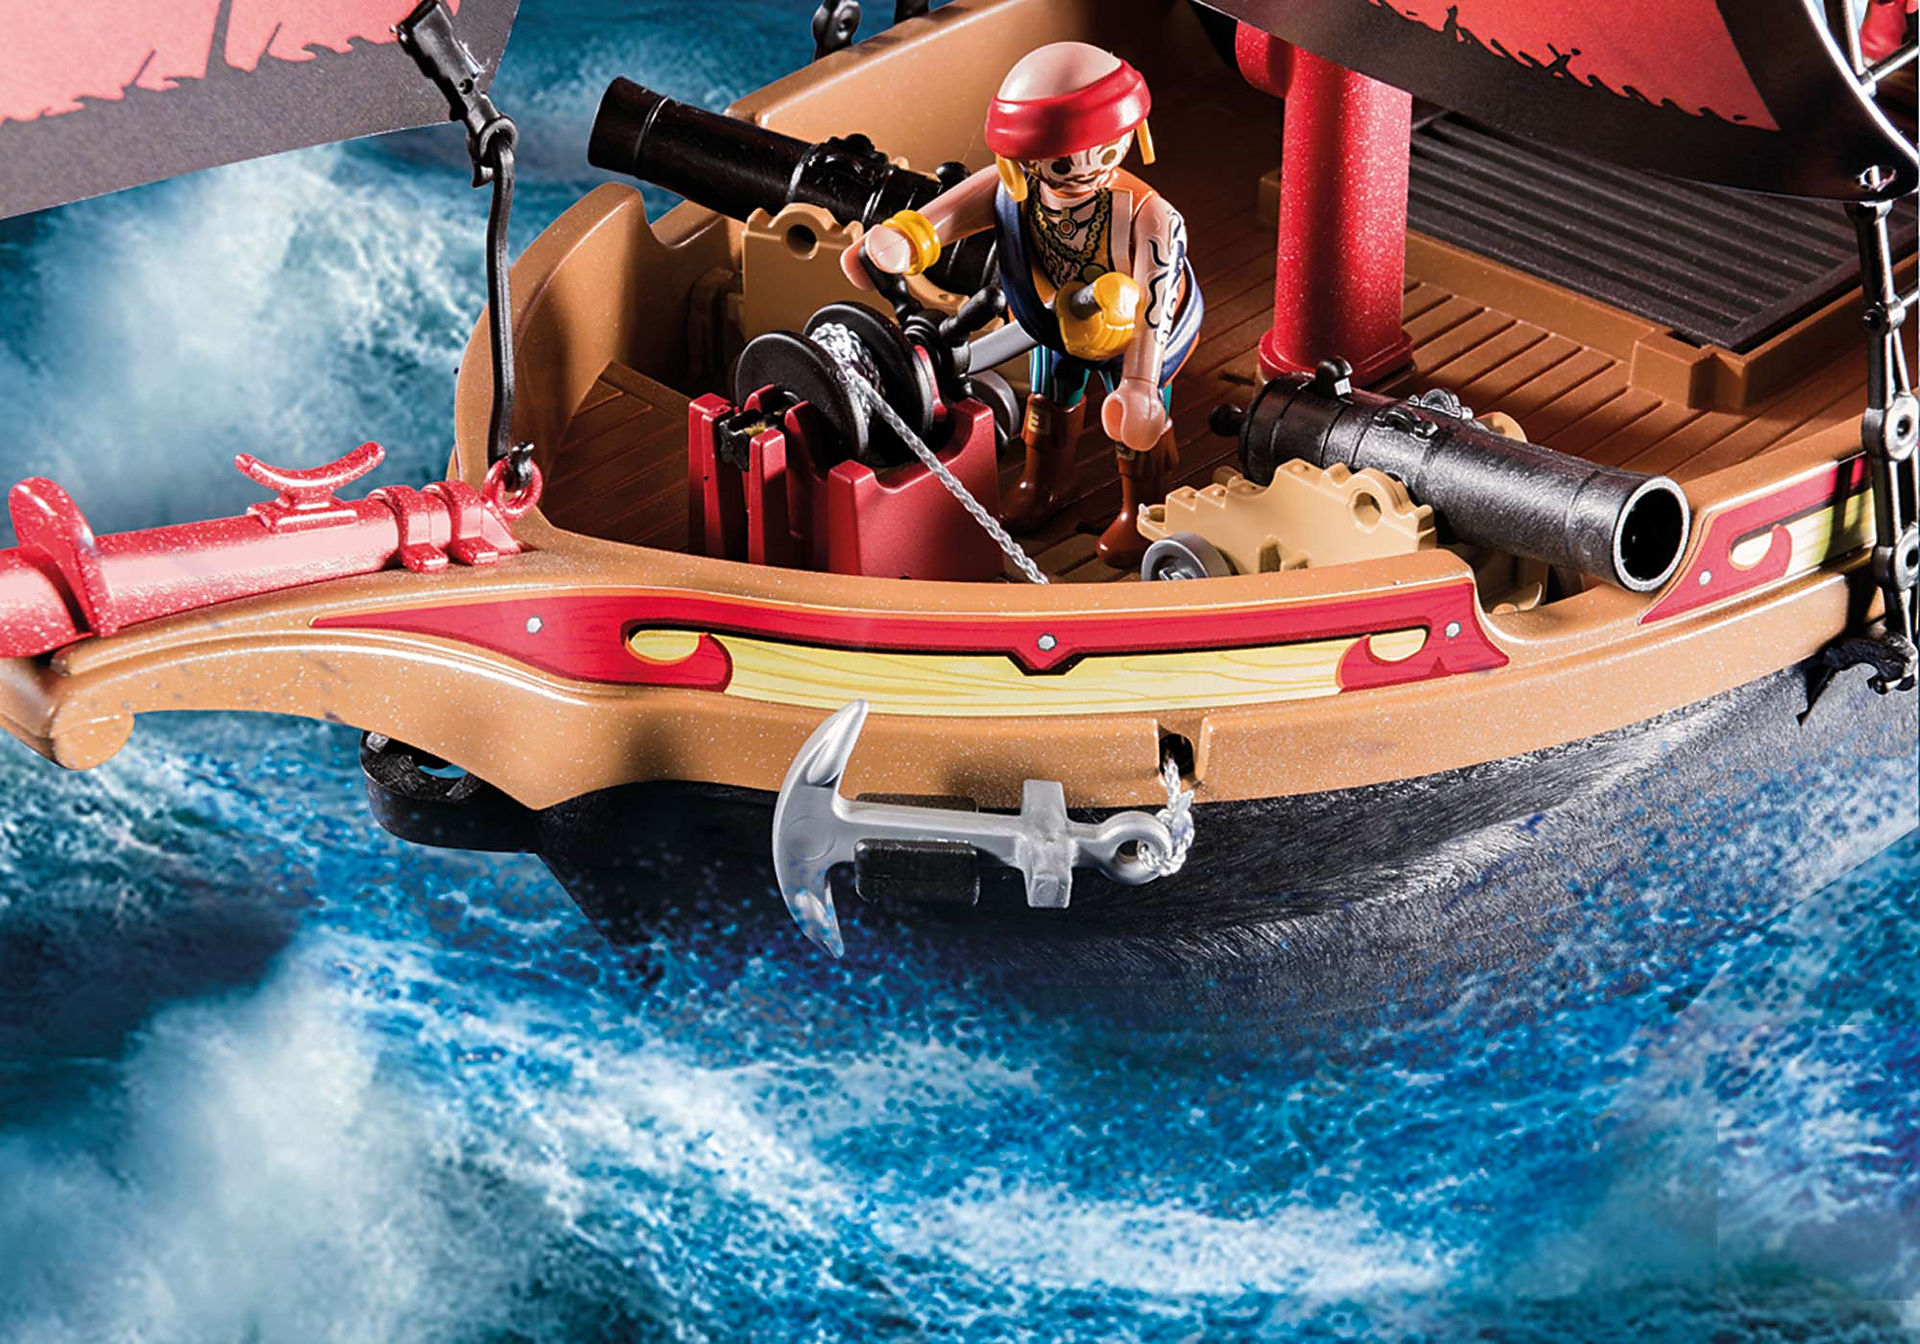 70411 Pirate Ship zoom image8